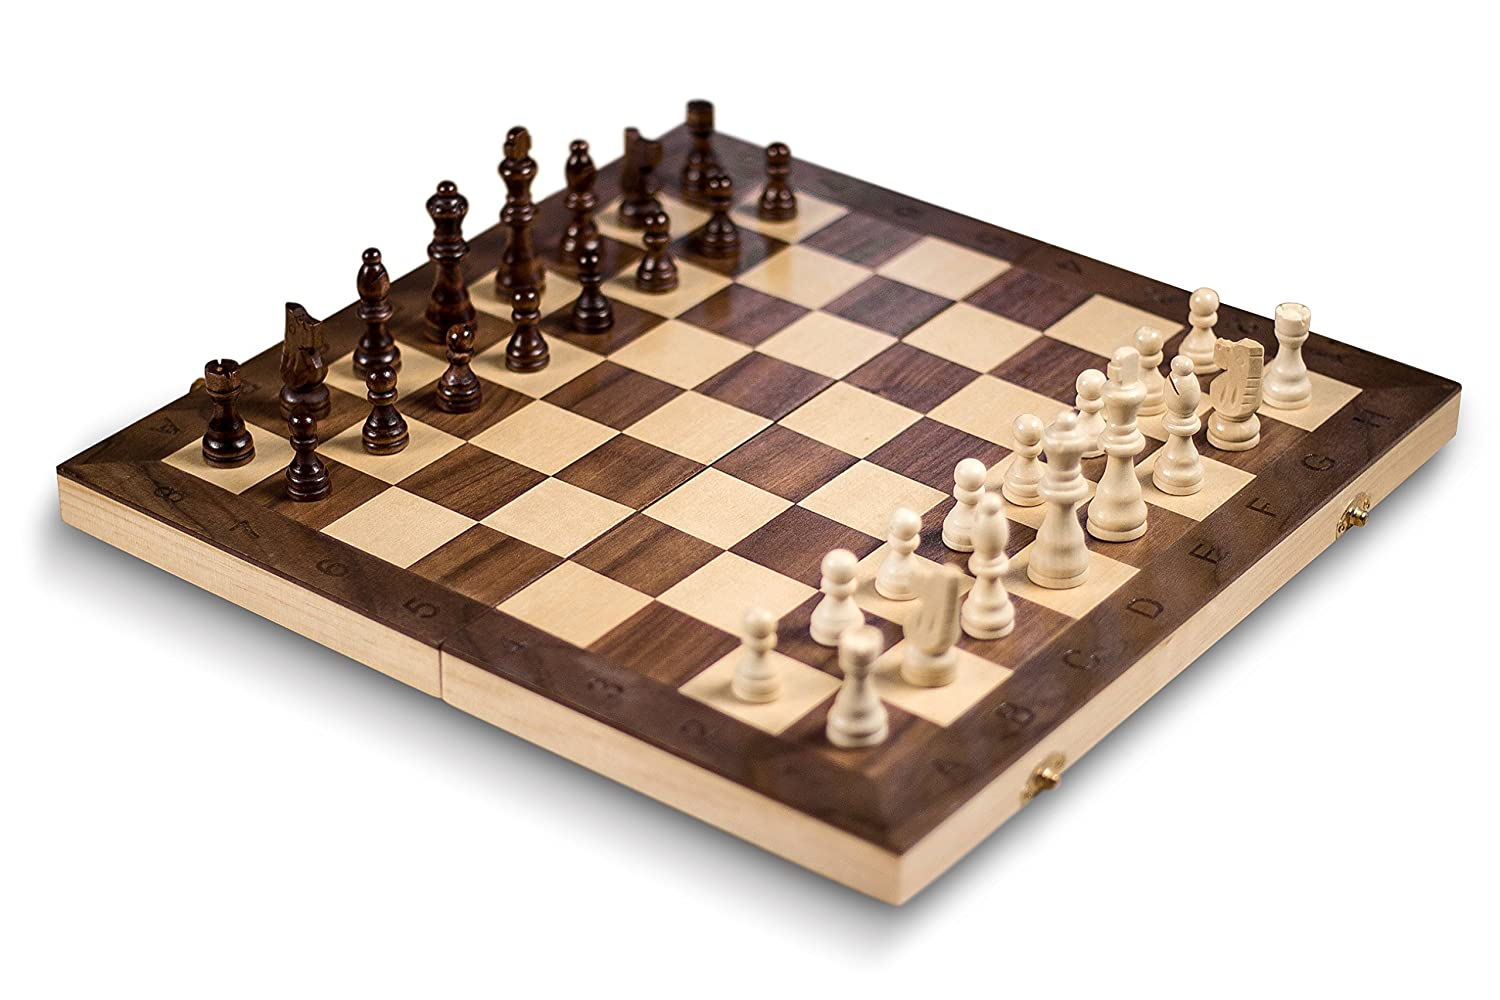 GrowUpSmart Smart Tactics Folding Chess Set